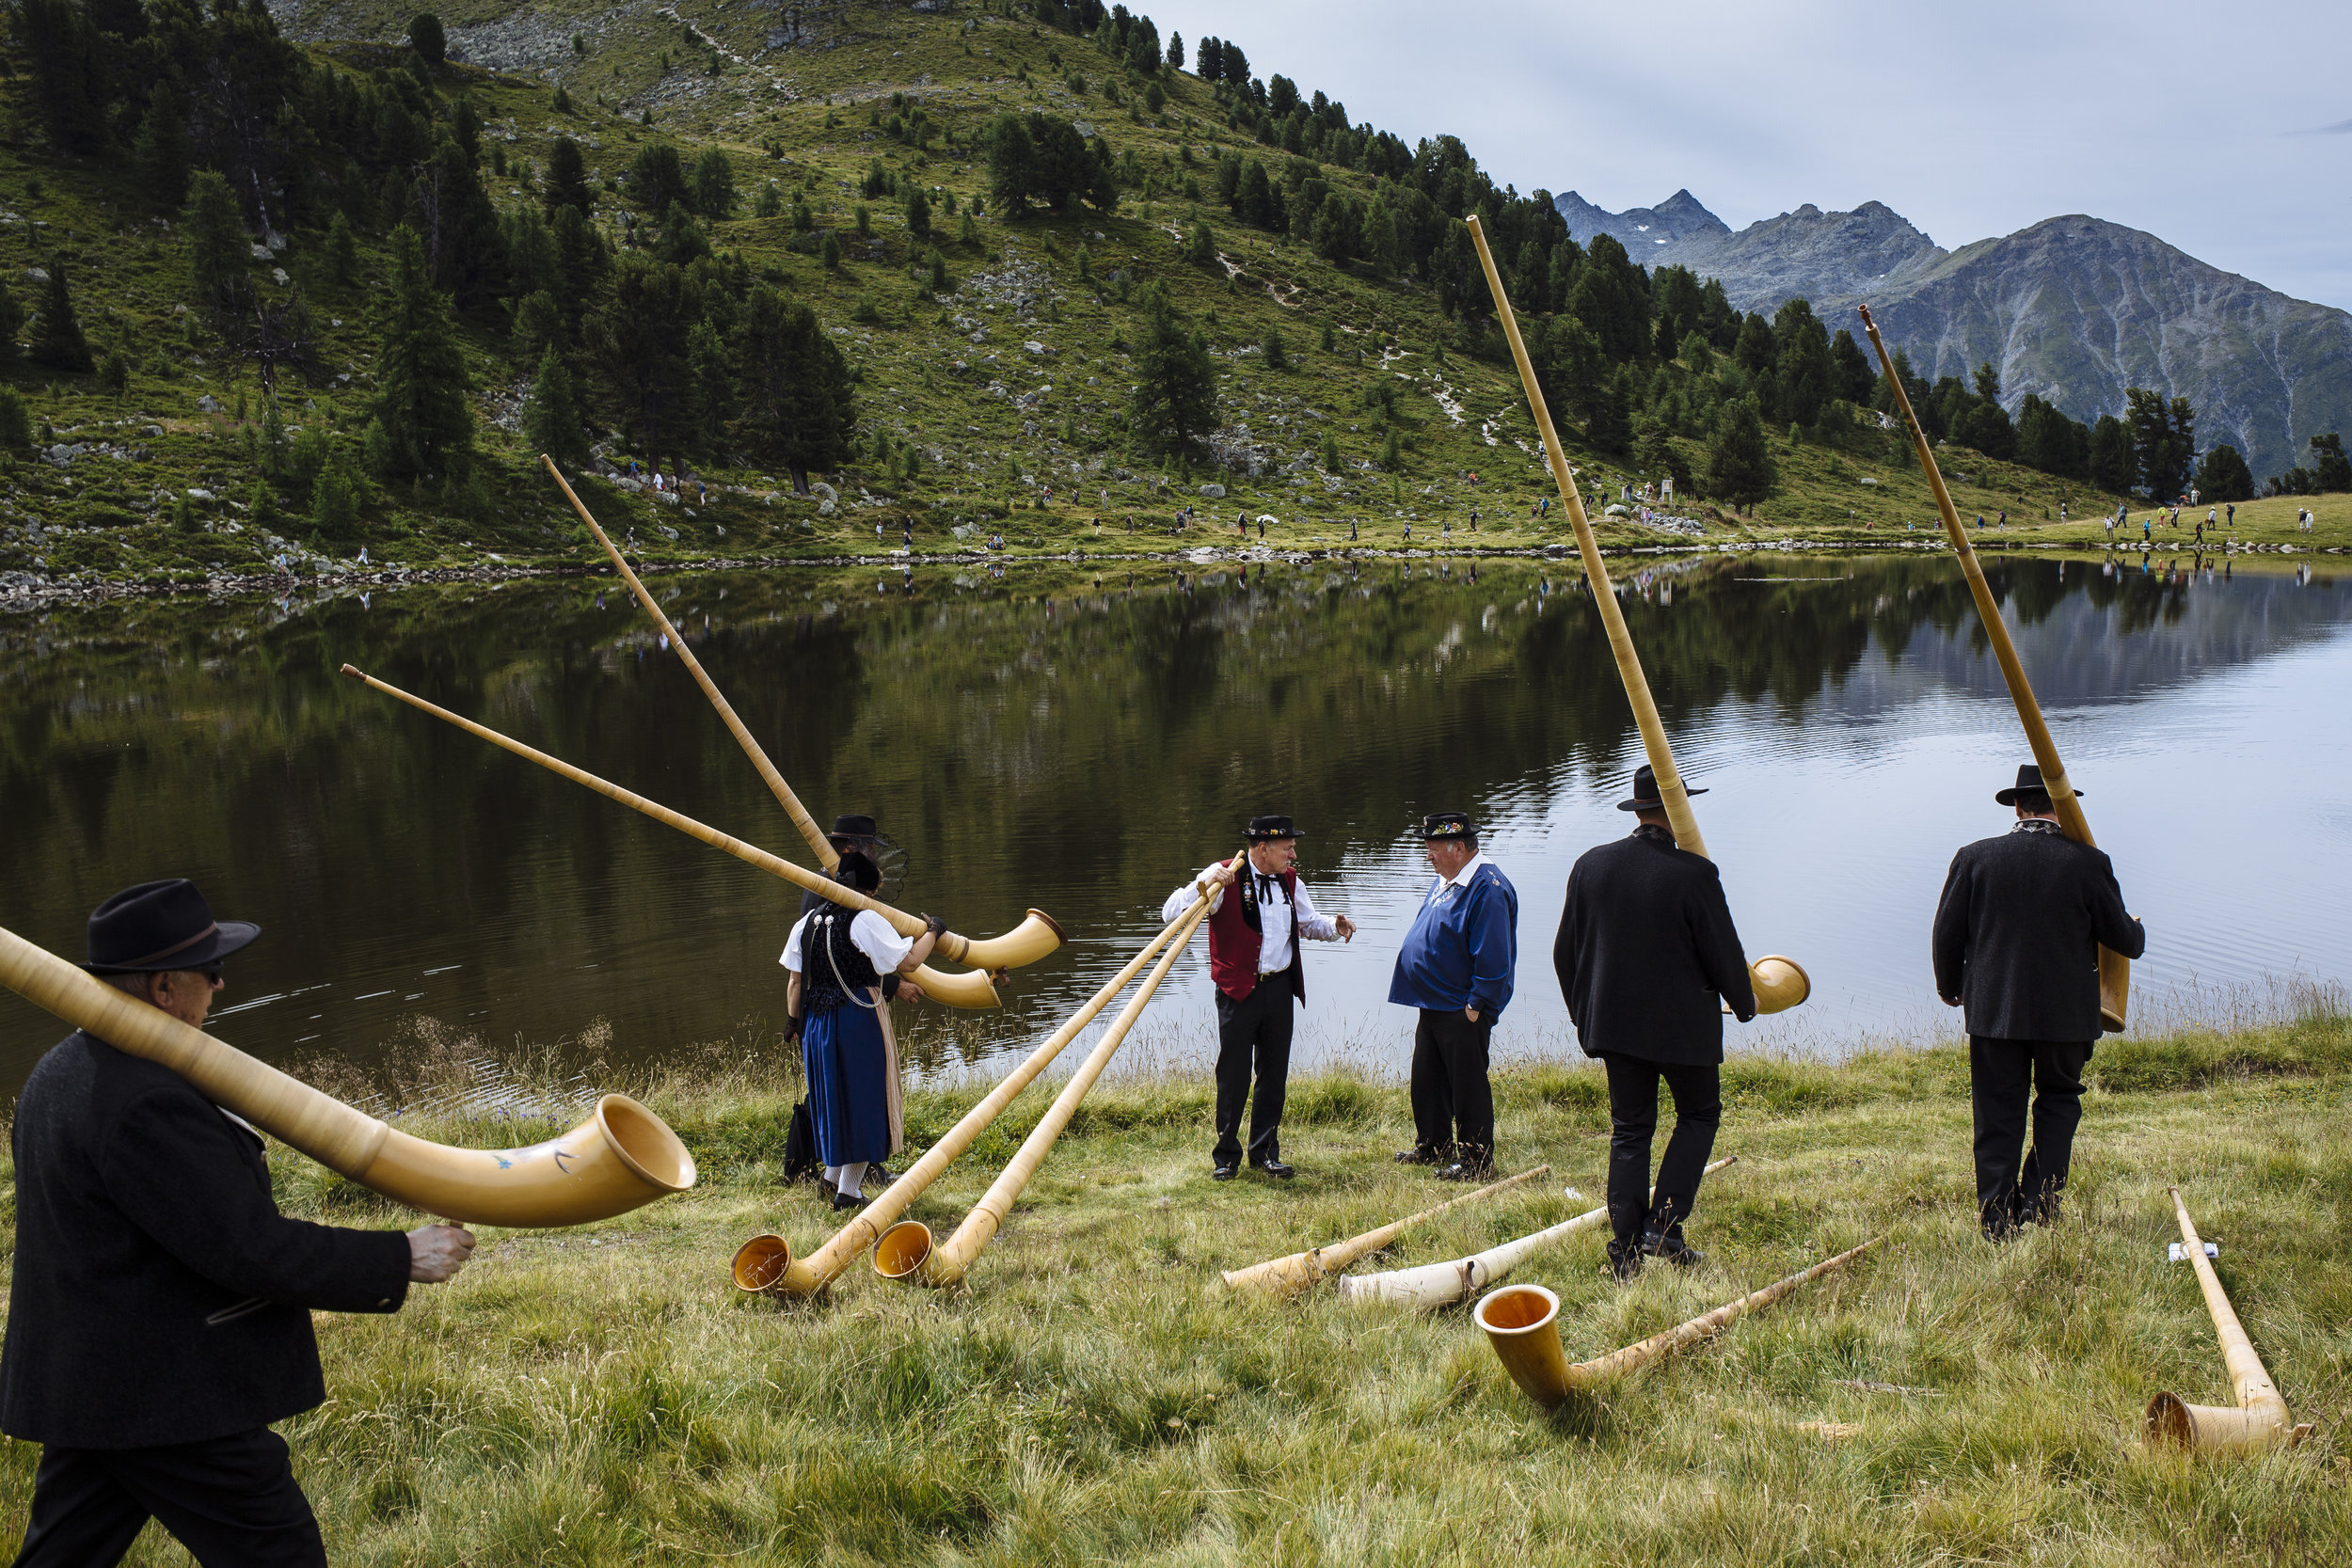 Alpenhorn players carry their instruments following a performance with 245 hornists as they walk along the Lac de Tracouet, situated 2200 meters (7220 feet) above sea level in Haute-Nendaz, canton of Valais, Switzerland, Sunday, July 26, 2015. (AP Photo/David Azia)